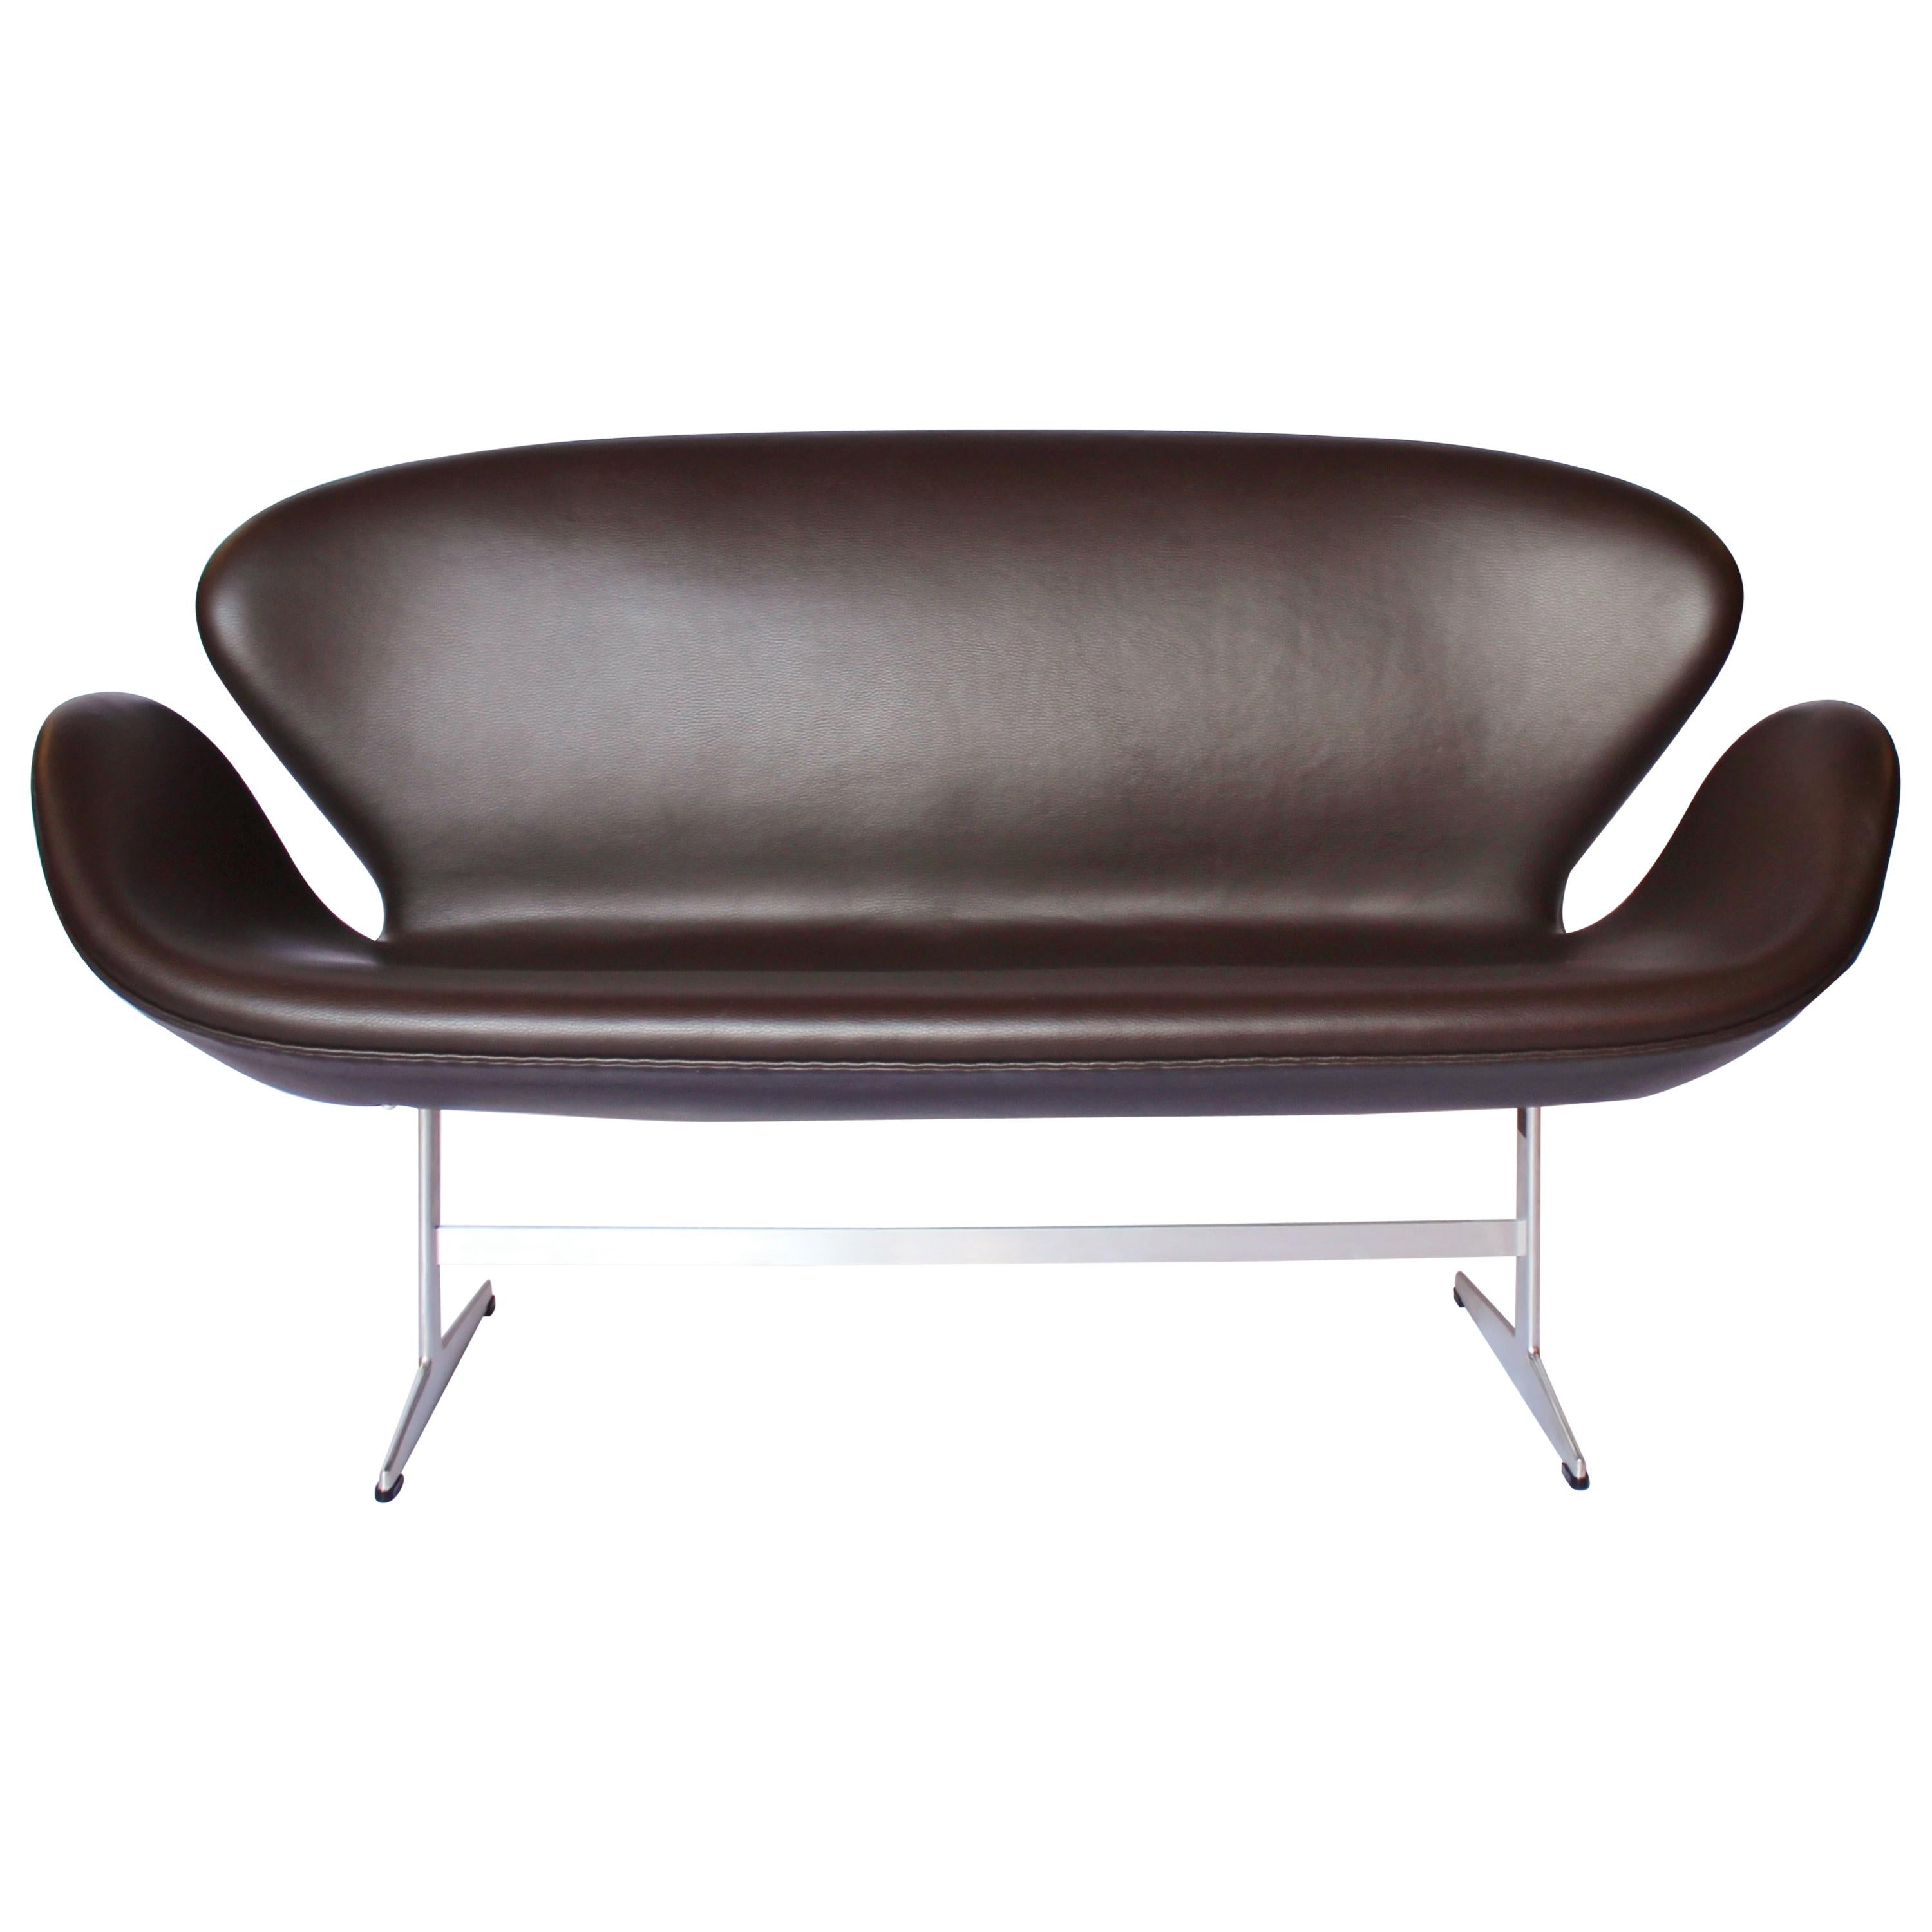 Swan Sofa, Model 3321, Two-Seat, by Arne Jacobsen and Fritz Hansen, 2016